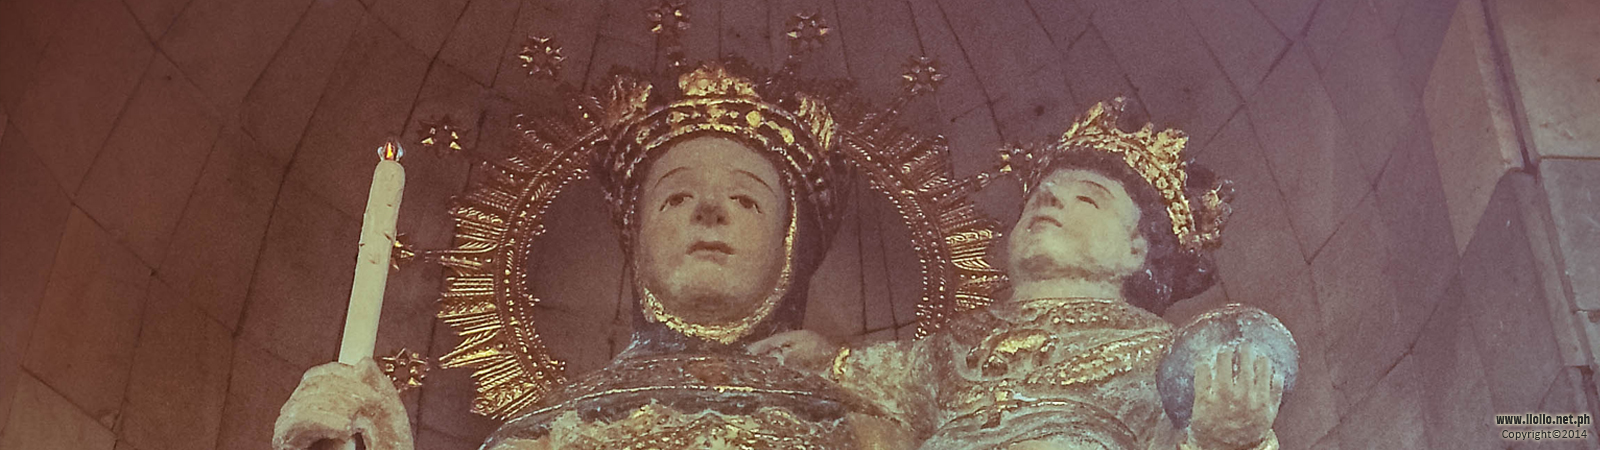 JARO'S FEAST OF THE CANDELARIA